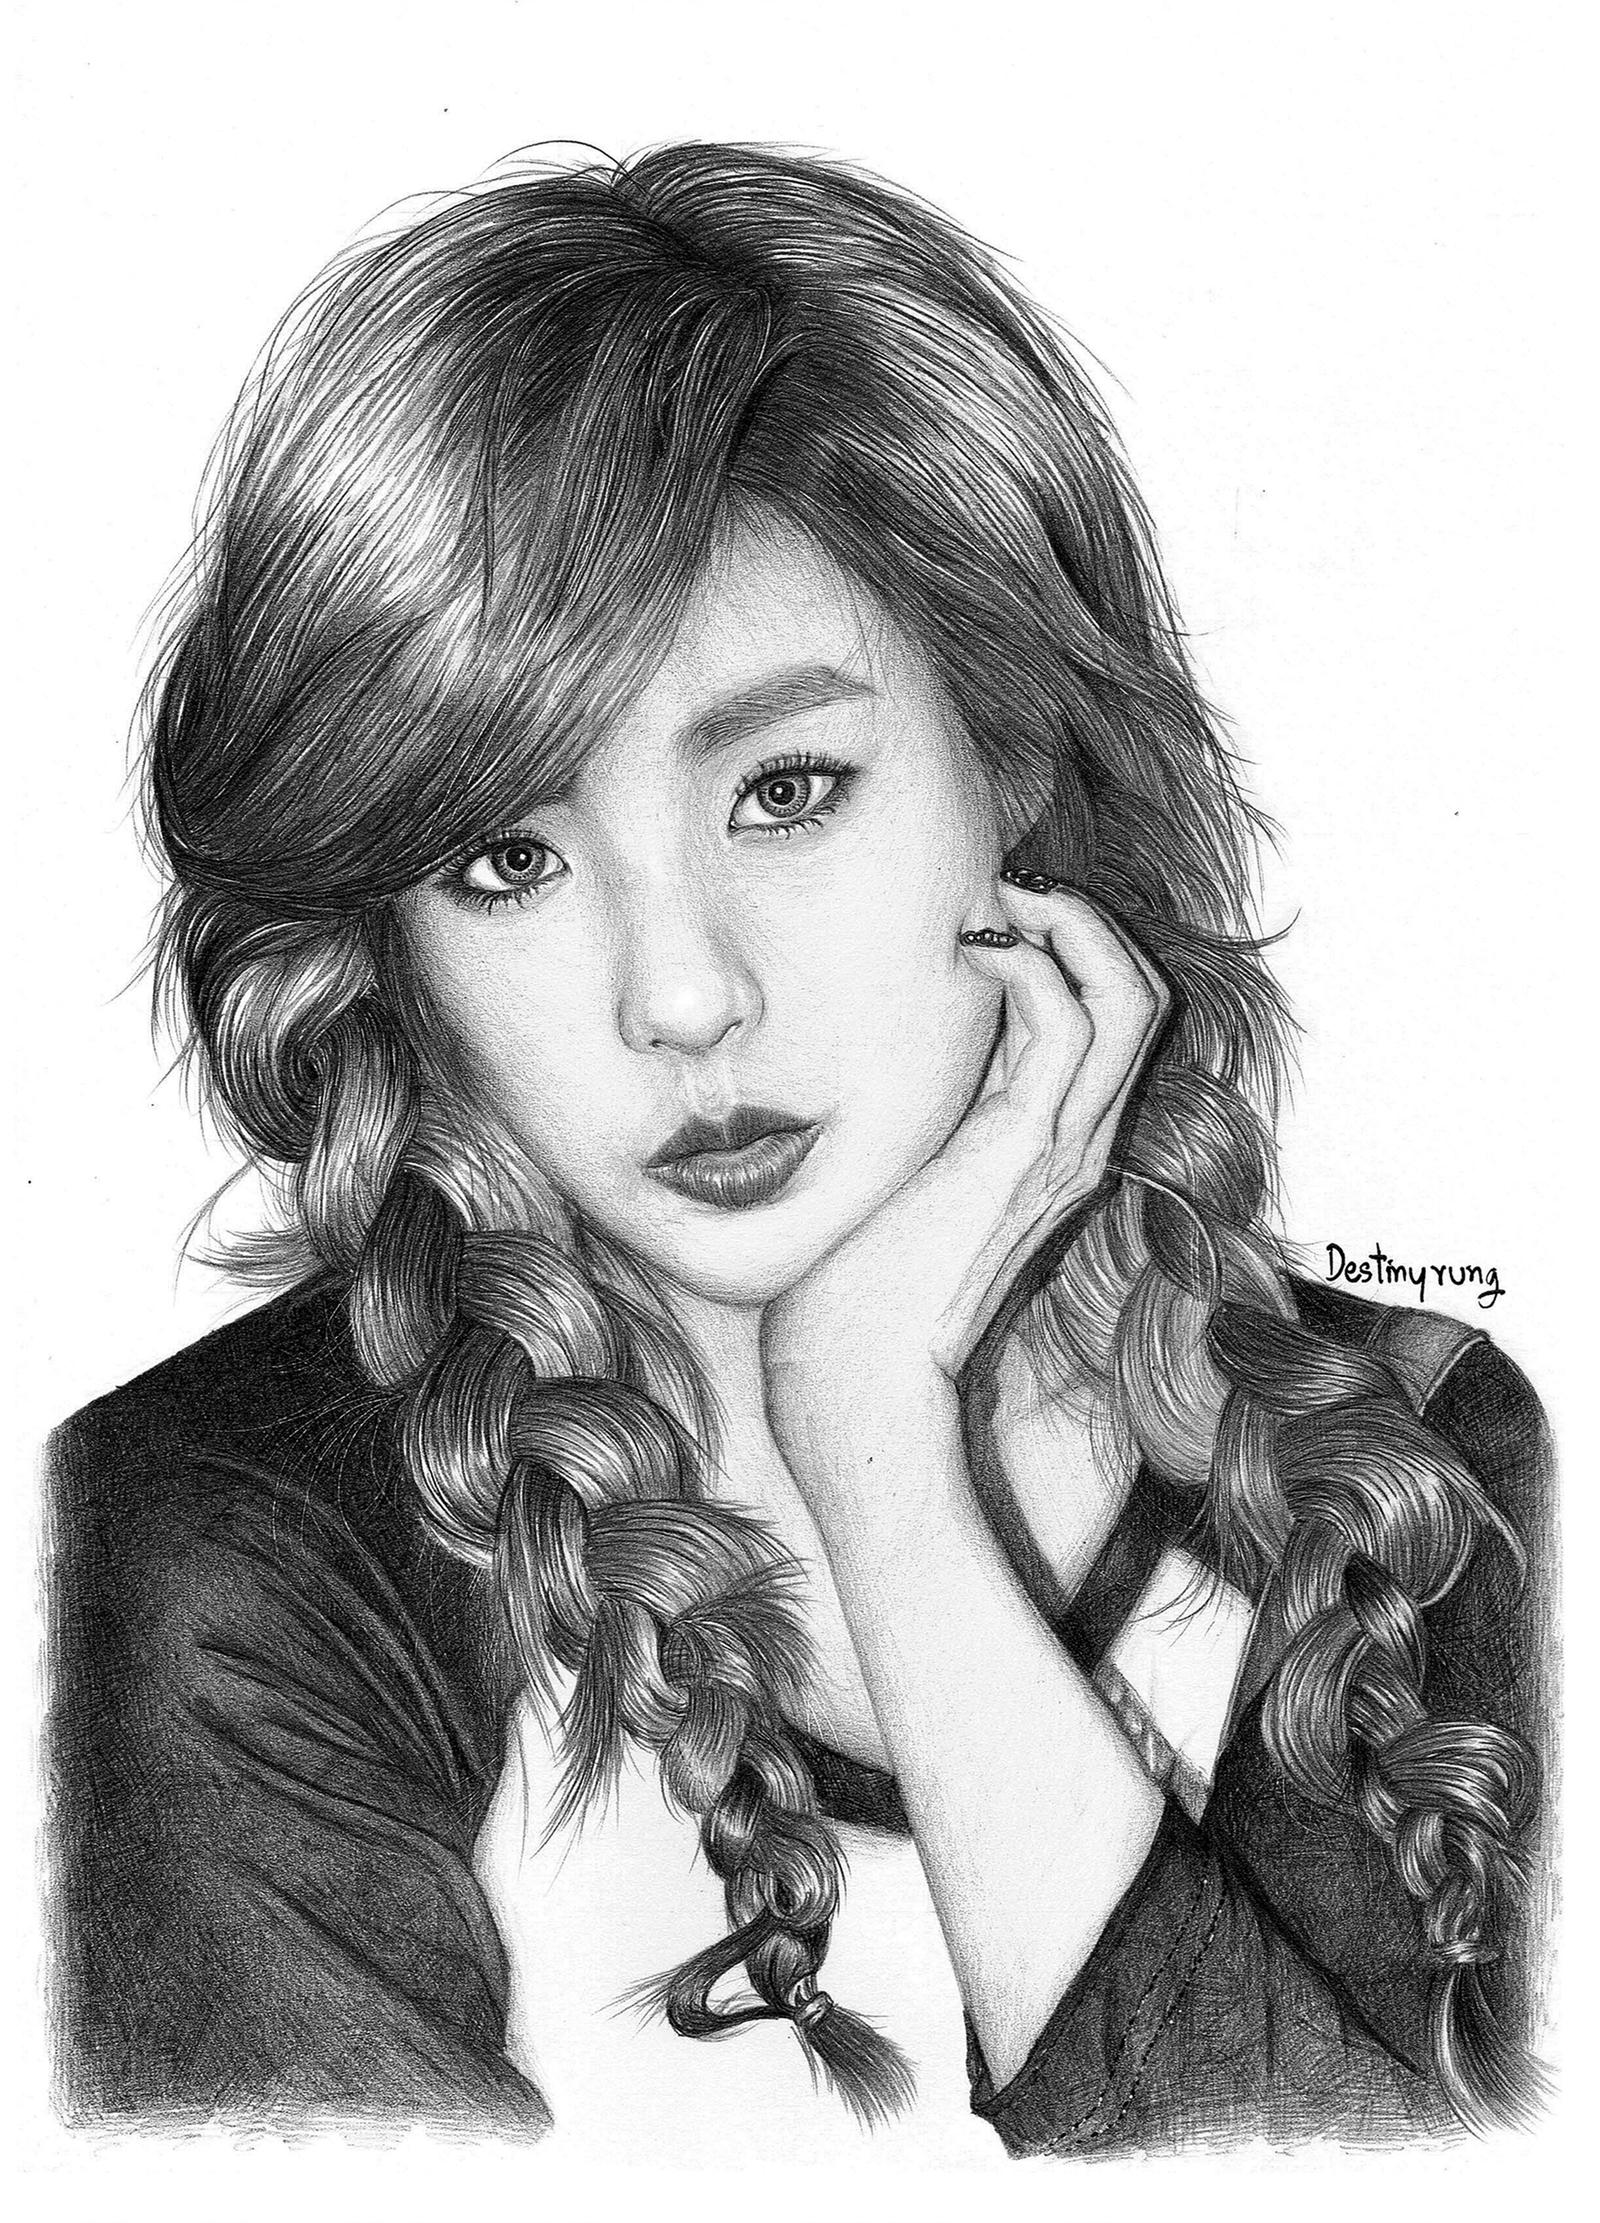 tiffany holler by destinyrung95 on deviantart